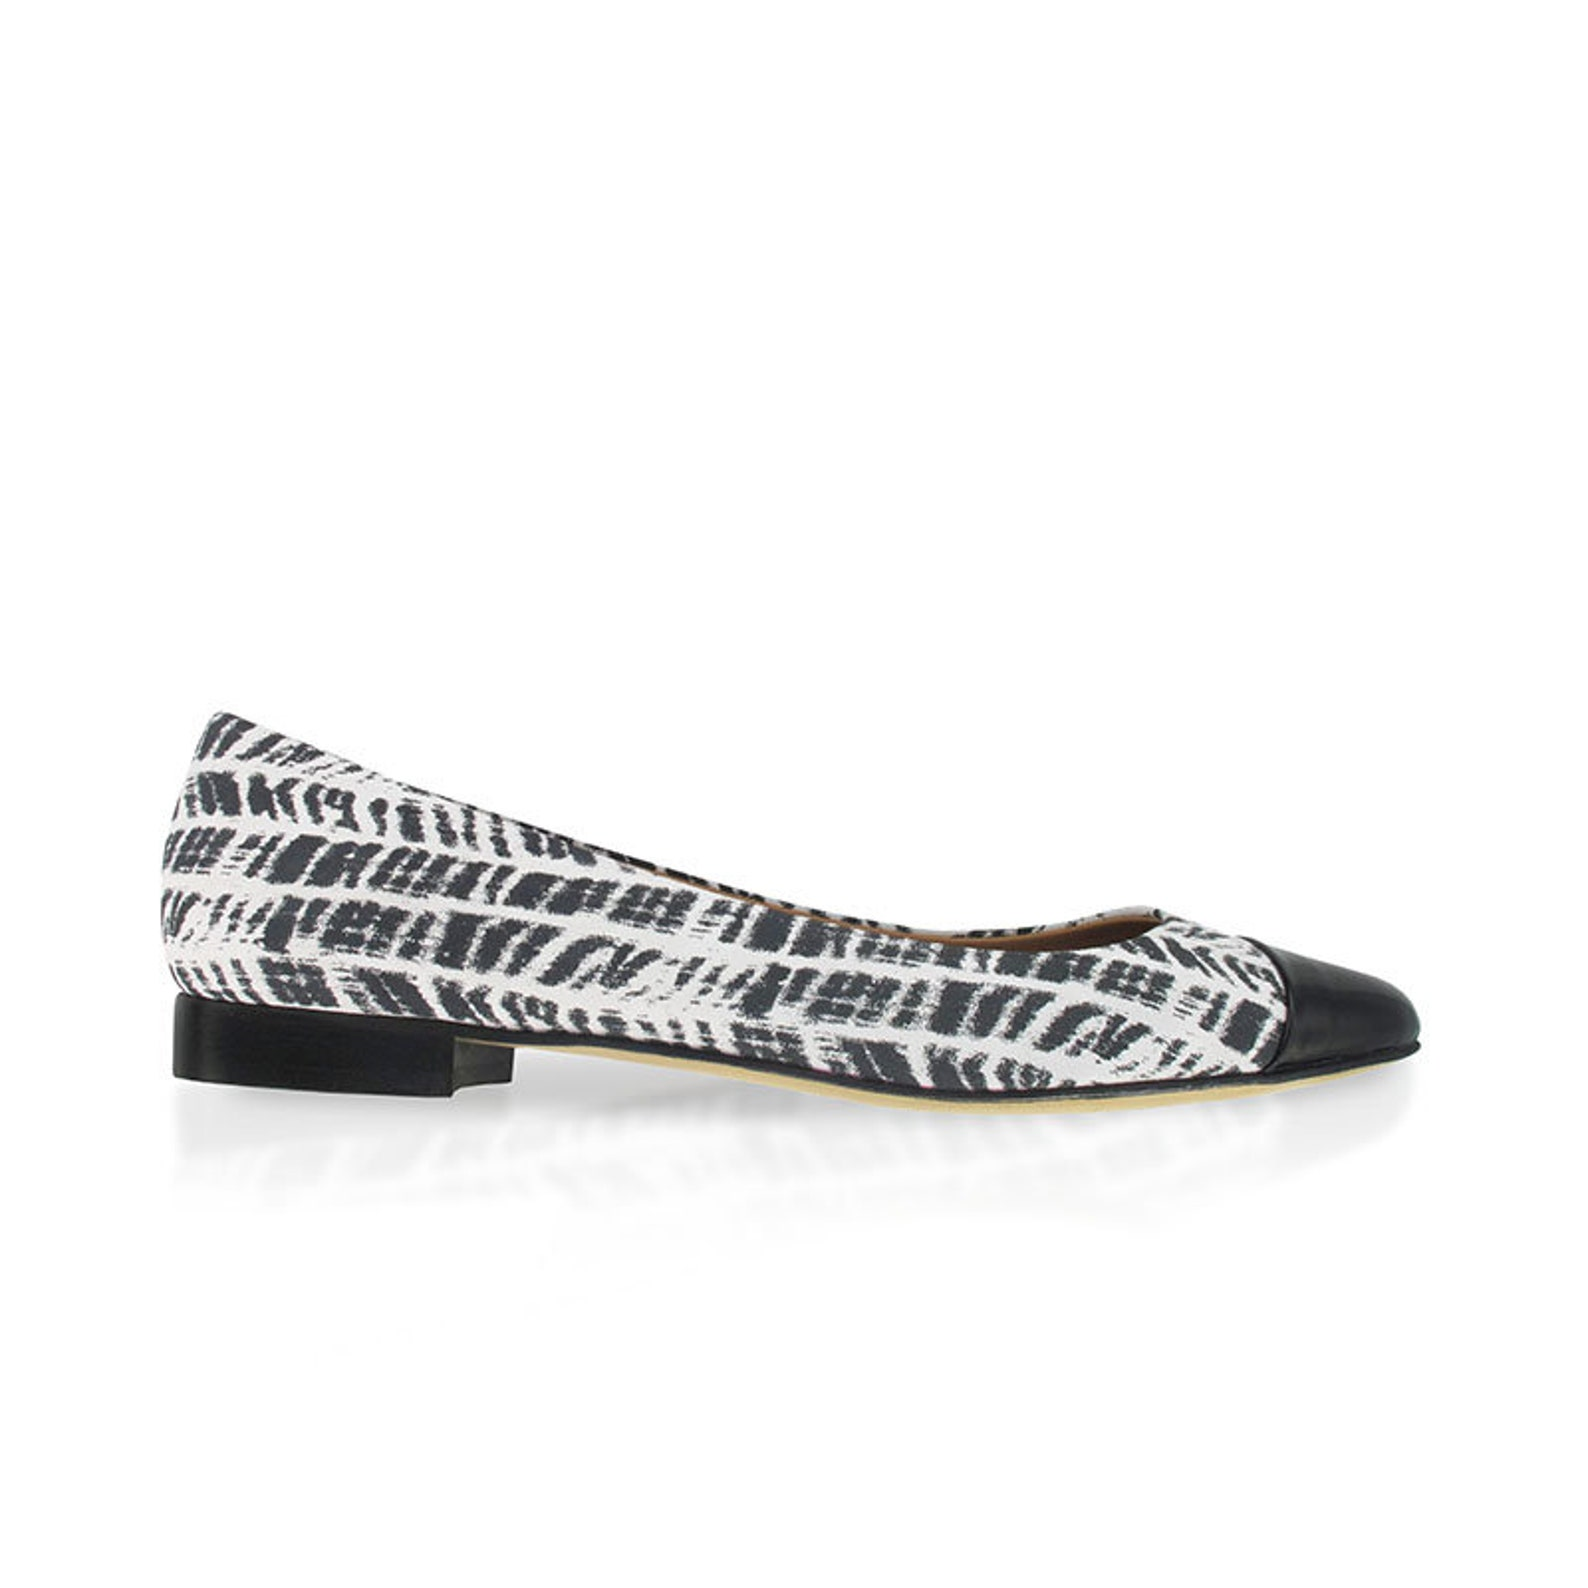 black and white leather pointy flats, zebra print leather flats, pointed toe ballet flats, women leather pointy flats, handmade